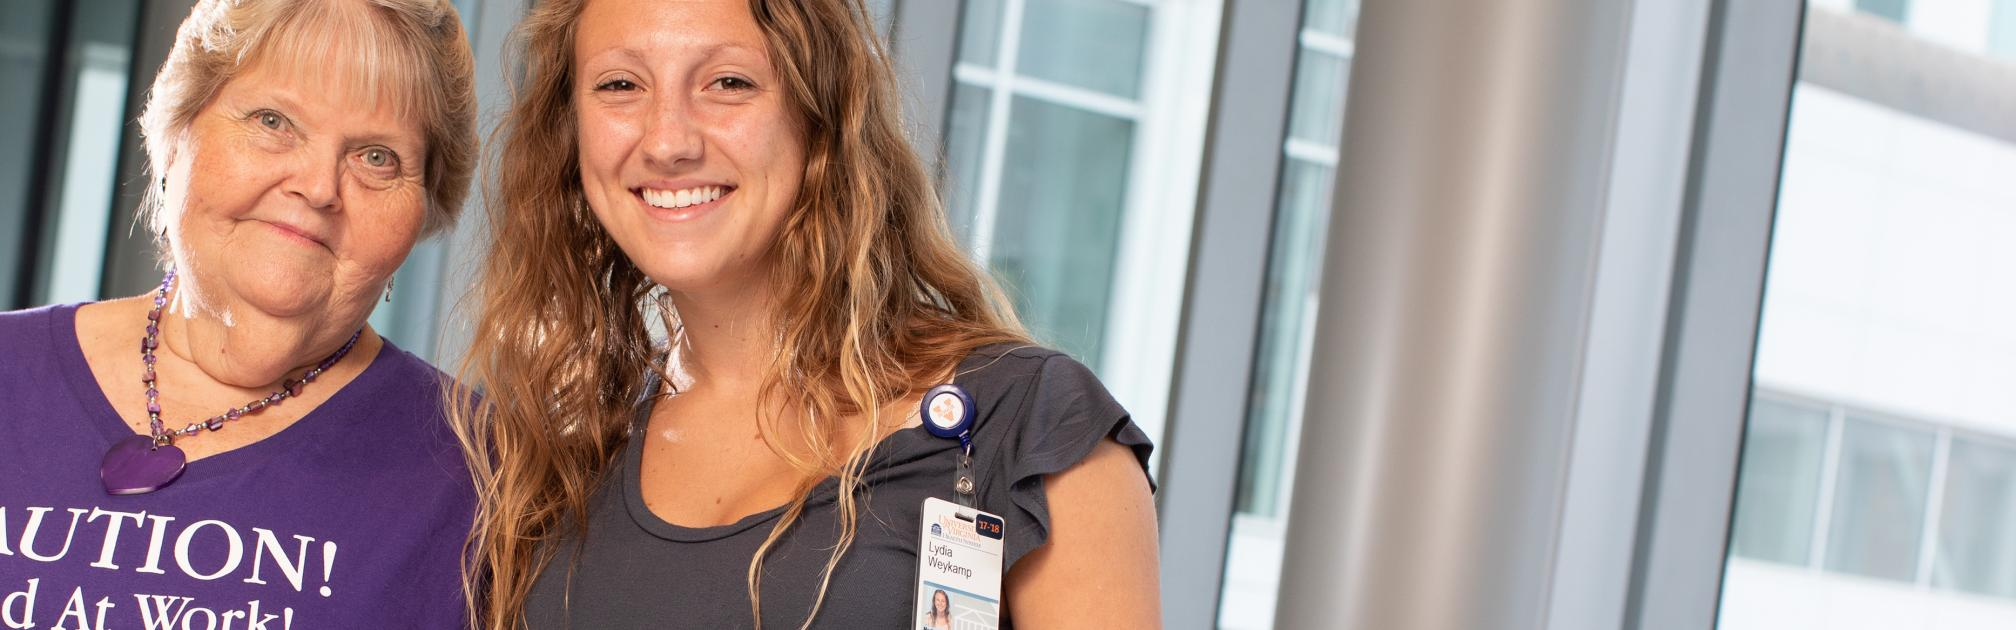 UVA patient and a UVA School of Medicine student stand together smiling.